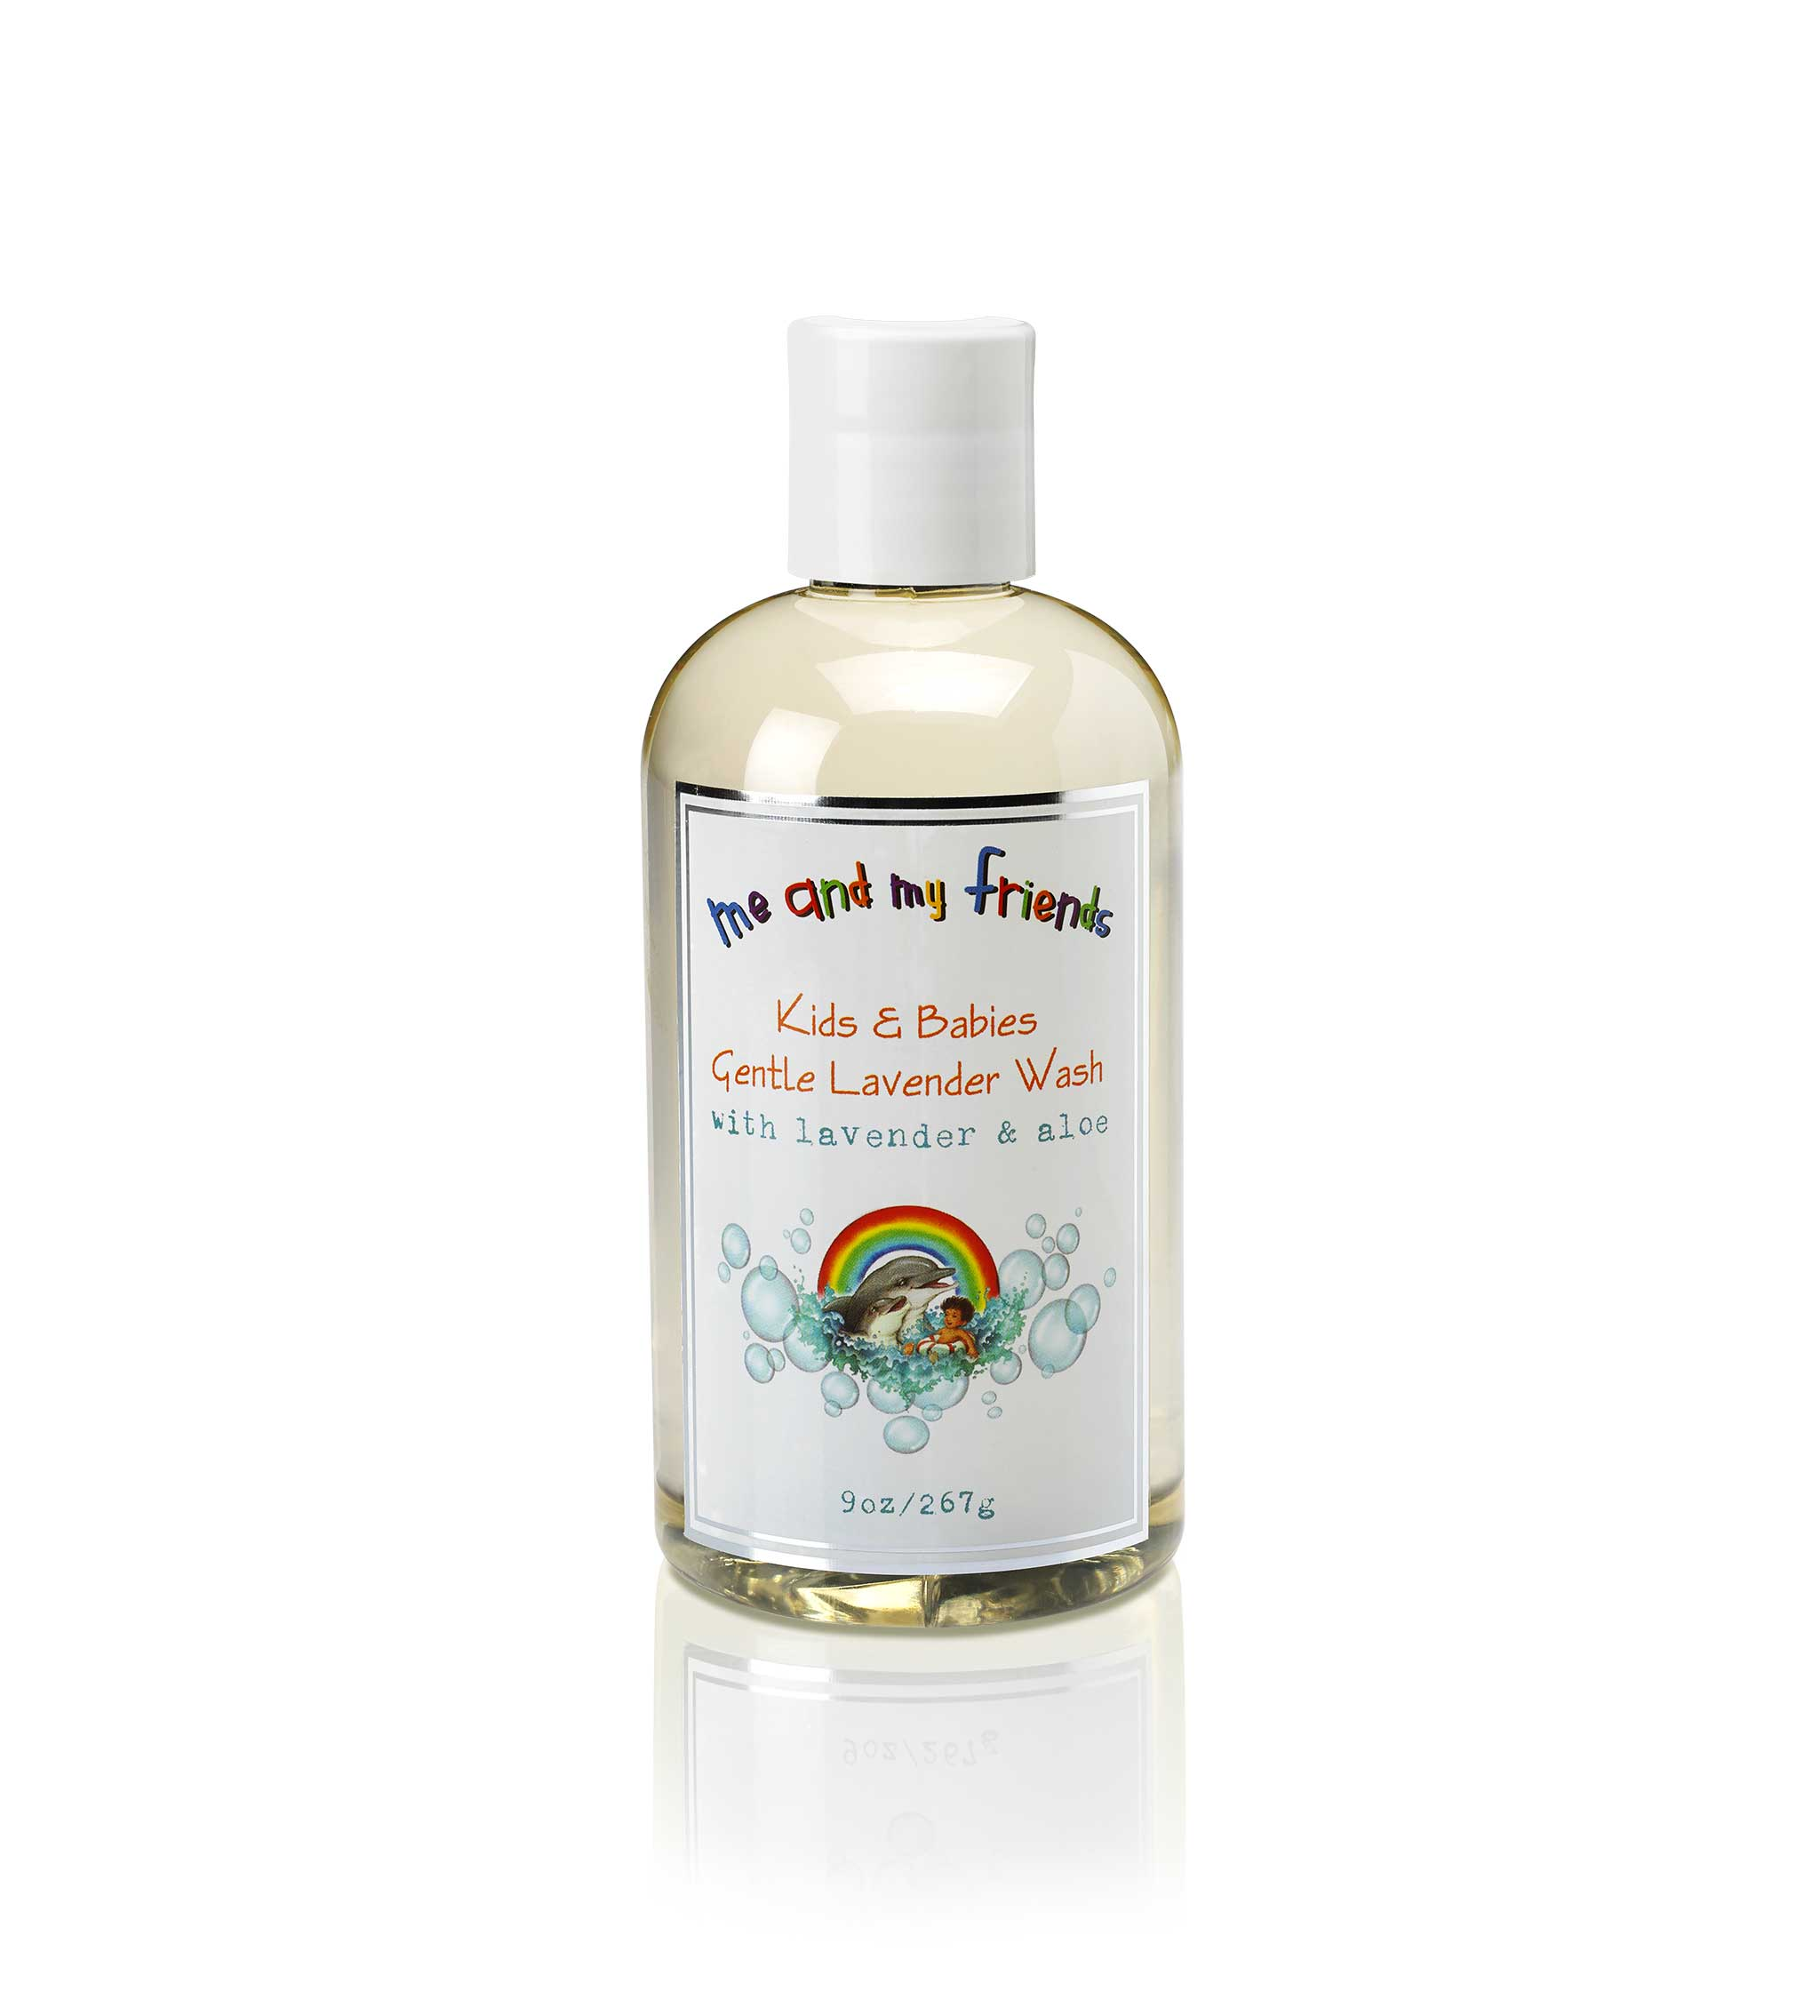 9oz bottle of Nabila K's 'Me and My Friends' Kids and Babies Gentle Lavender Wash with Lavender and Aloe